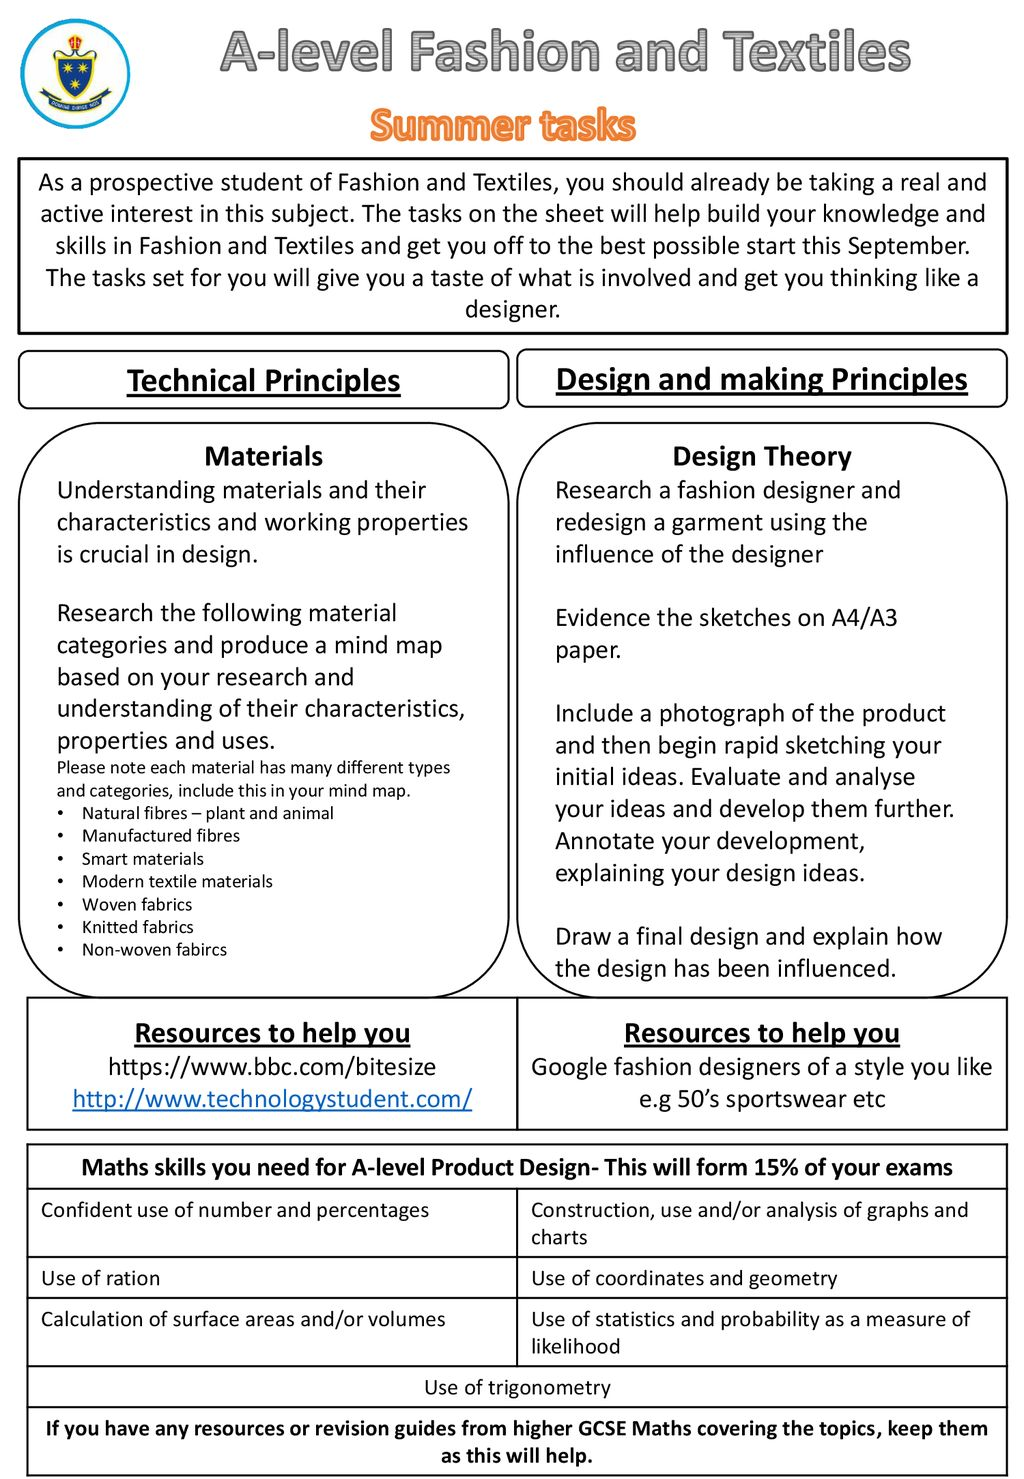 A Level Fashion And Textiles Design And Making Principles Ppt Download